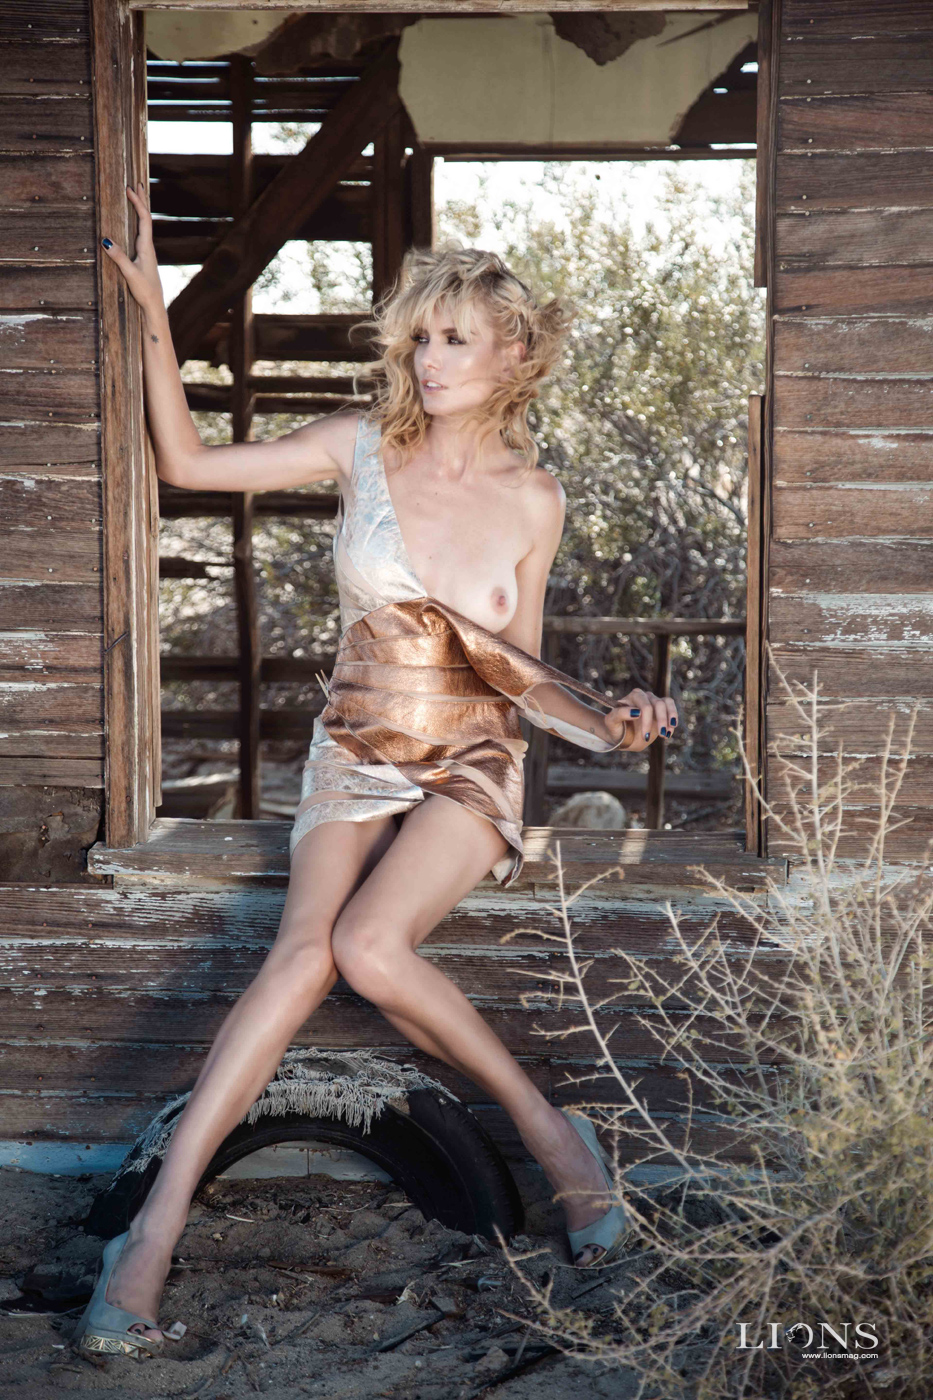 Stranded in the Desert Women  styling photoshooting model make up lionsmag lions magazine hair stylist Greta Tuckute fashionmodel fashion editorial body art   // lionsmag.com - premium nude photography magazine